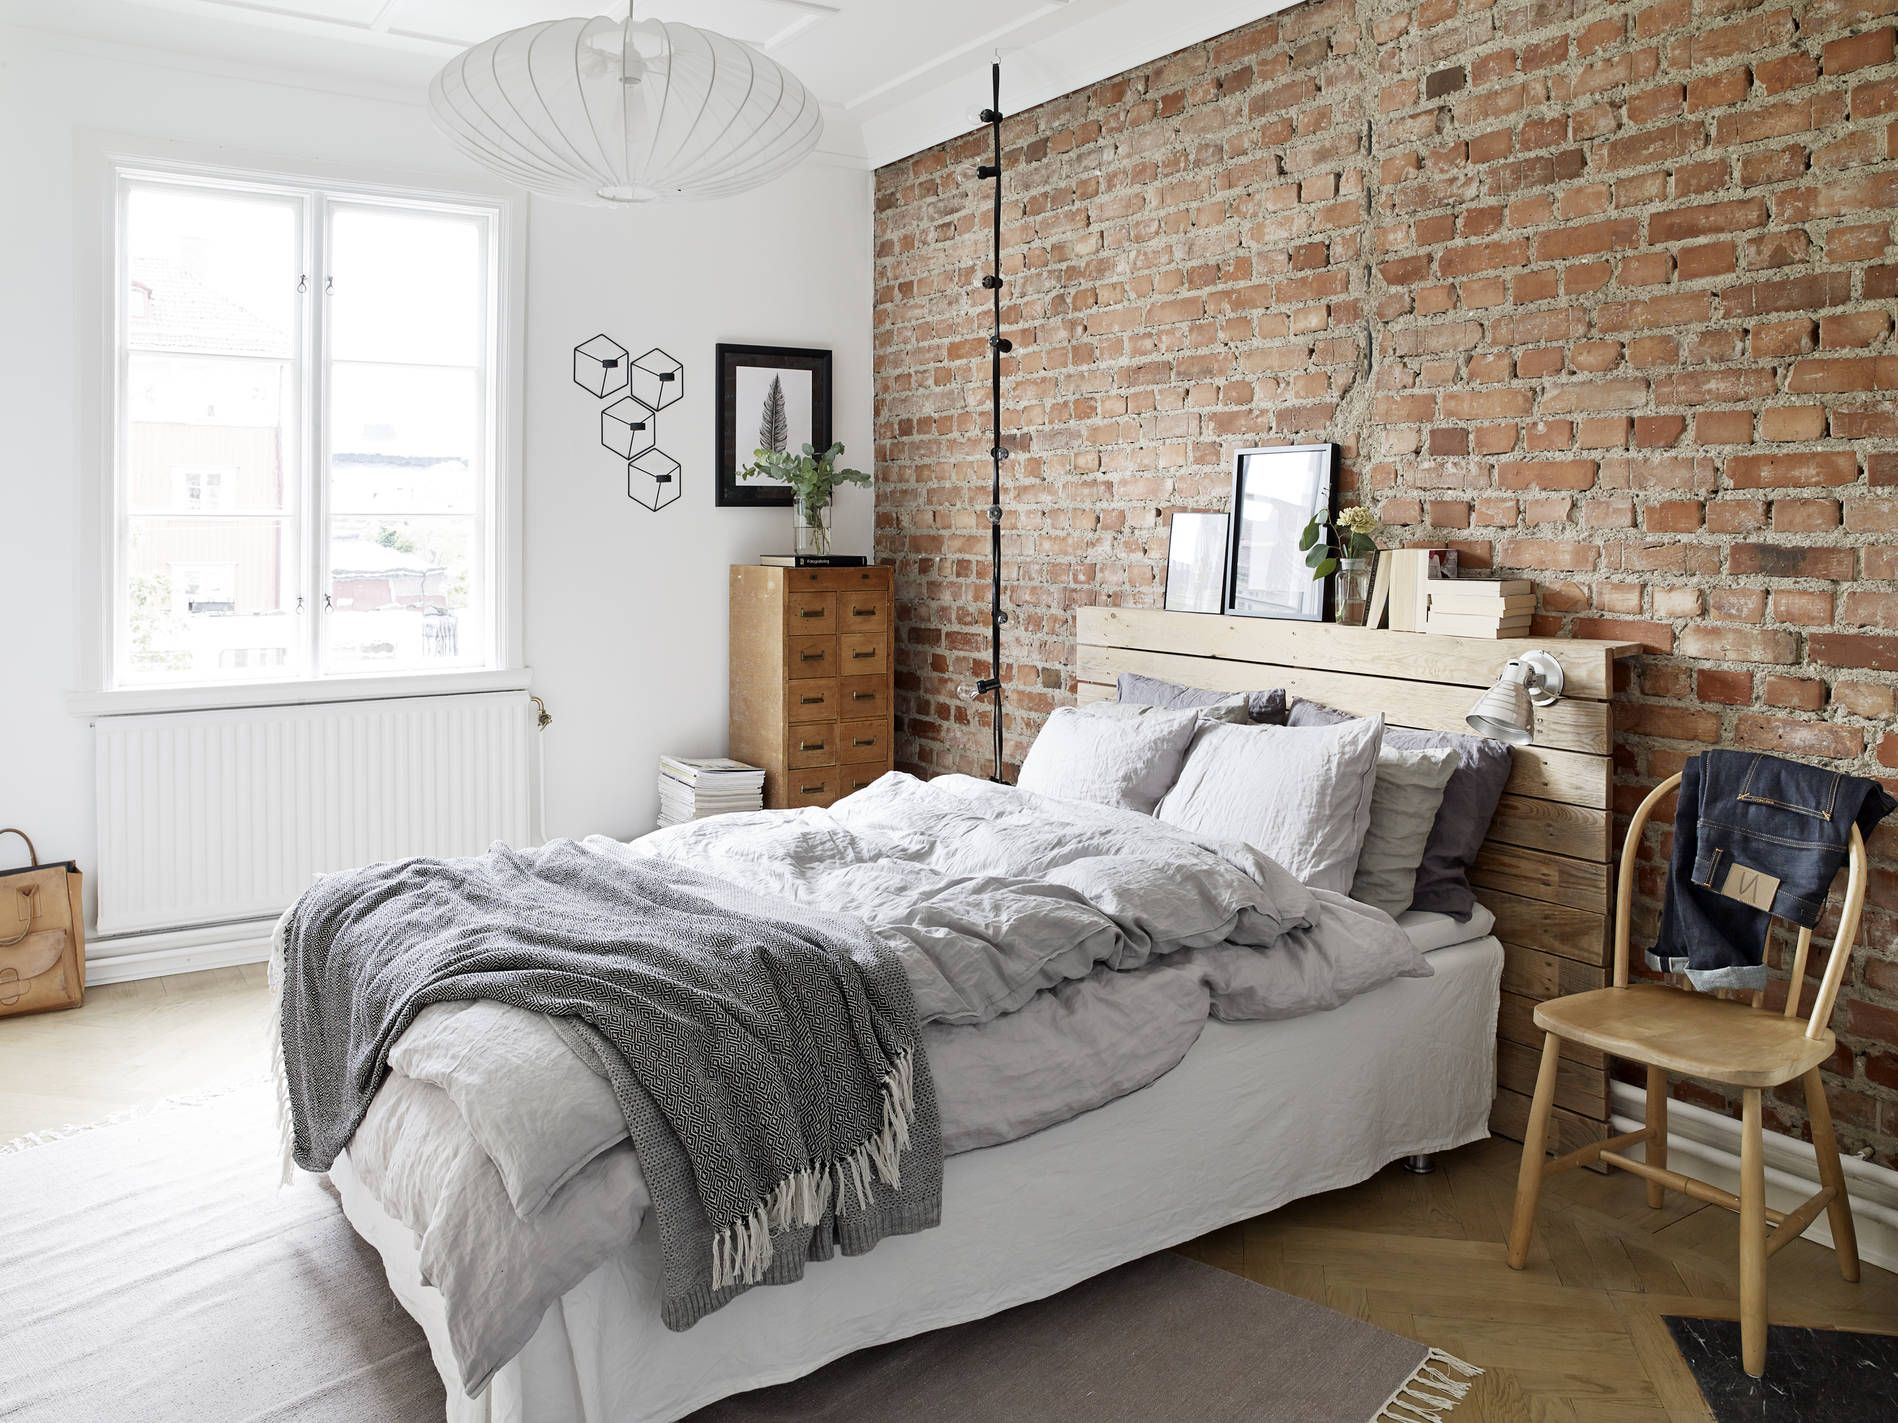 Bedroom Designs Brick wall bedroom, Brick wallpaper